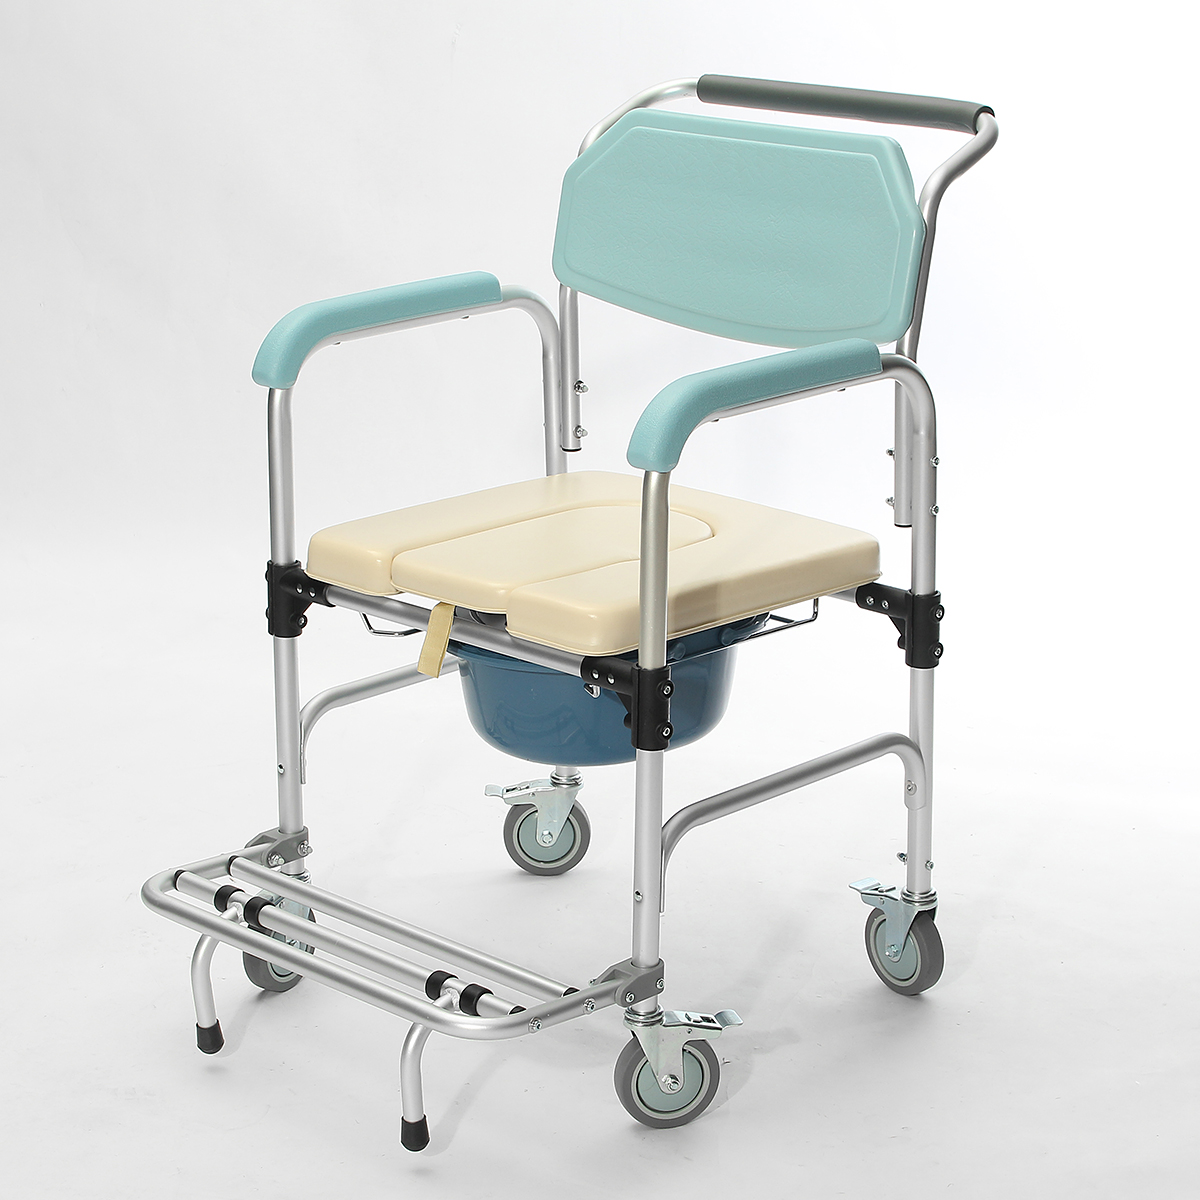 Folding Commode Chair 3 In 1 Commode Wheelchair Bedside Toilet And Shower Seat